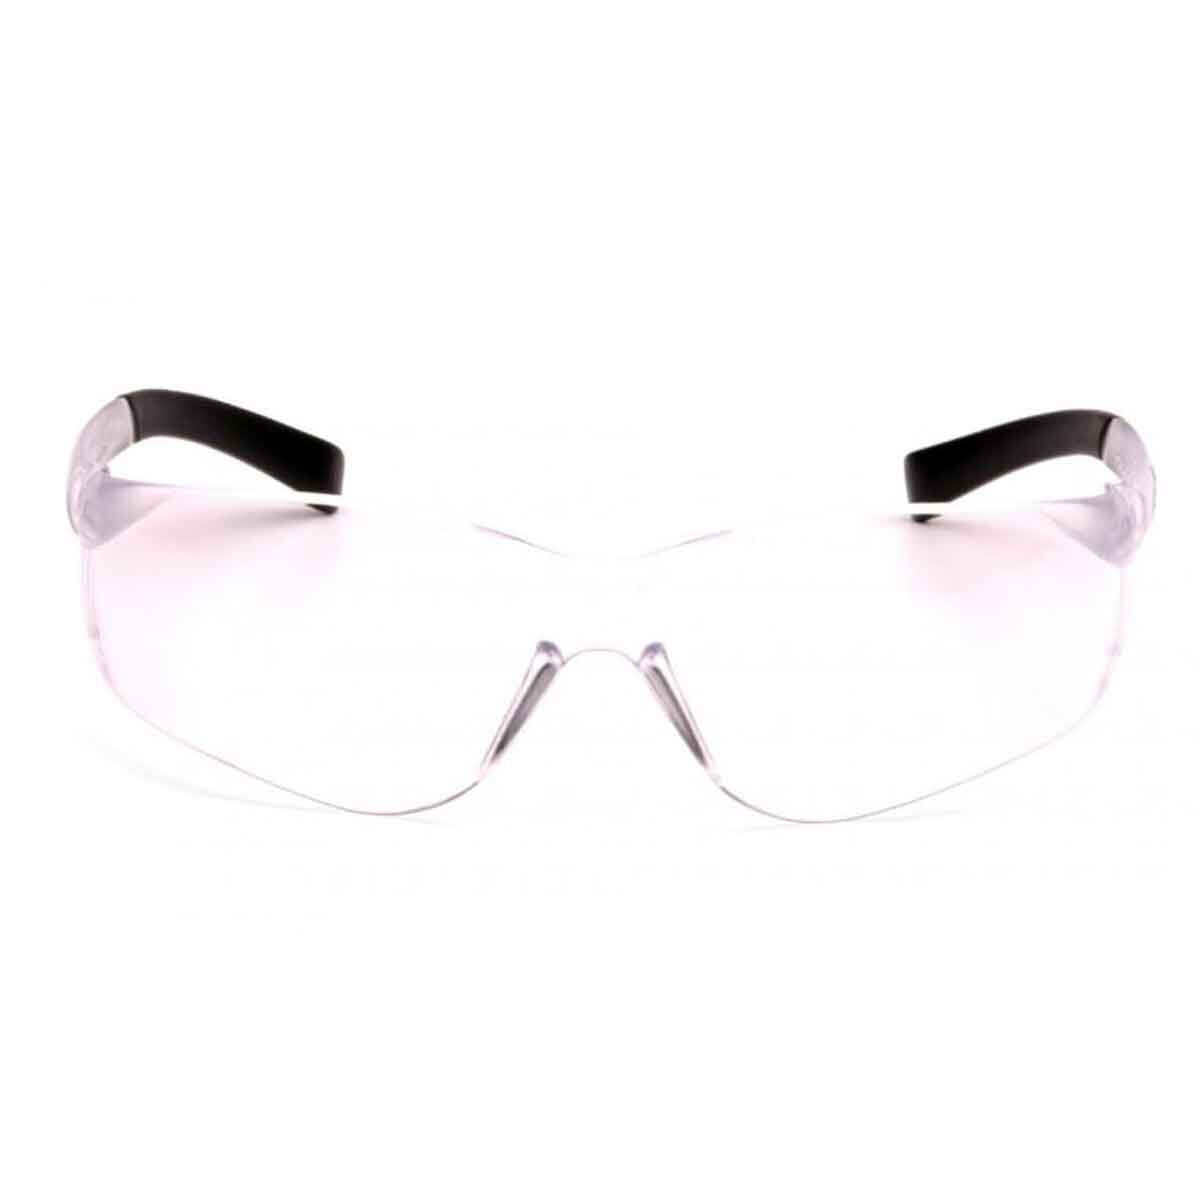 Pyramex Ztek Eye Protection Safety Glasses Front View